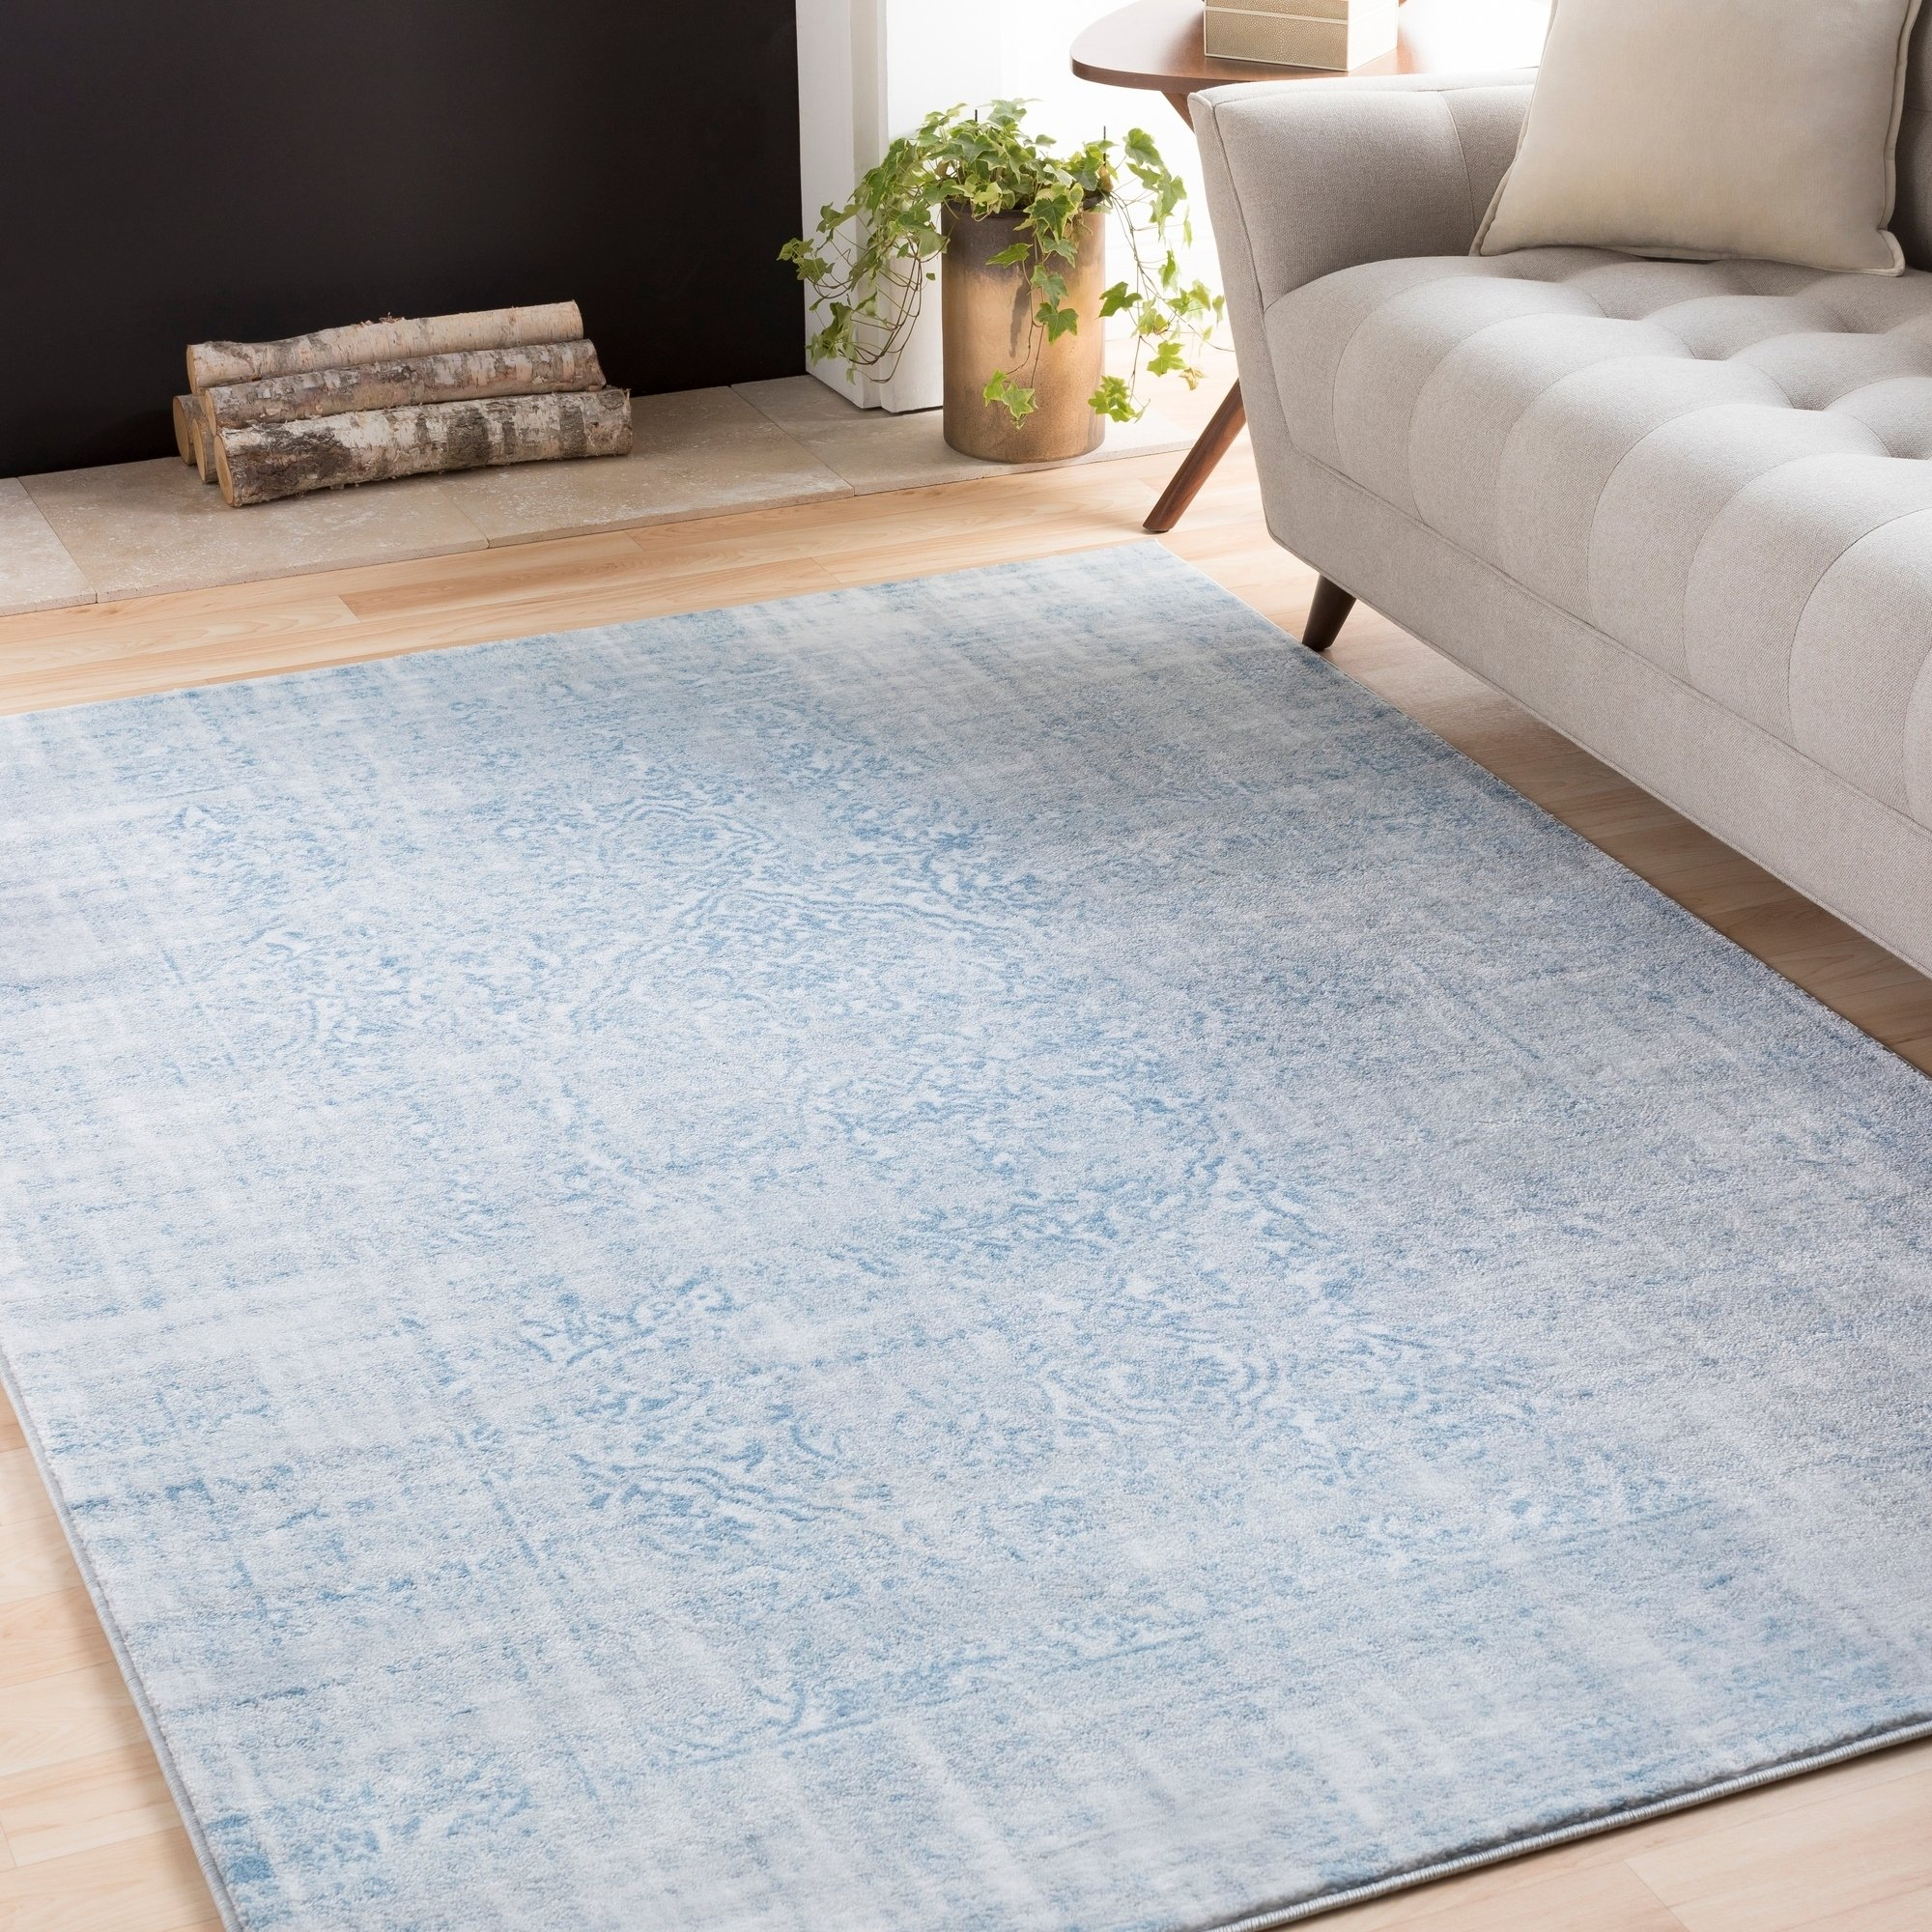 Area Rug 6 7 X 9 Blue 6 7 X 9 Area Rugs Rugs Blue